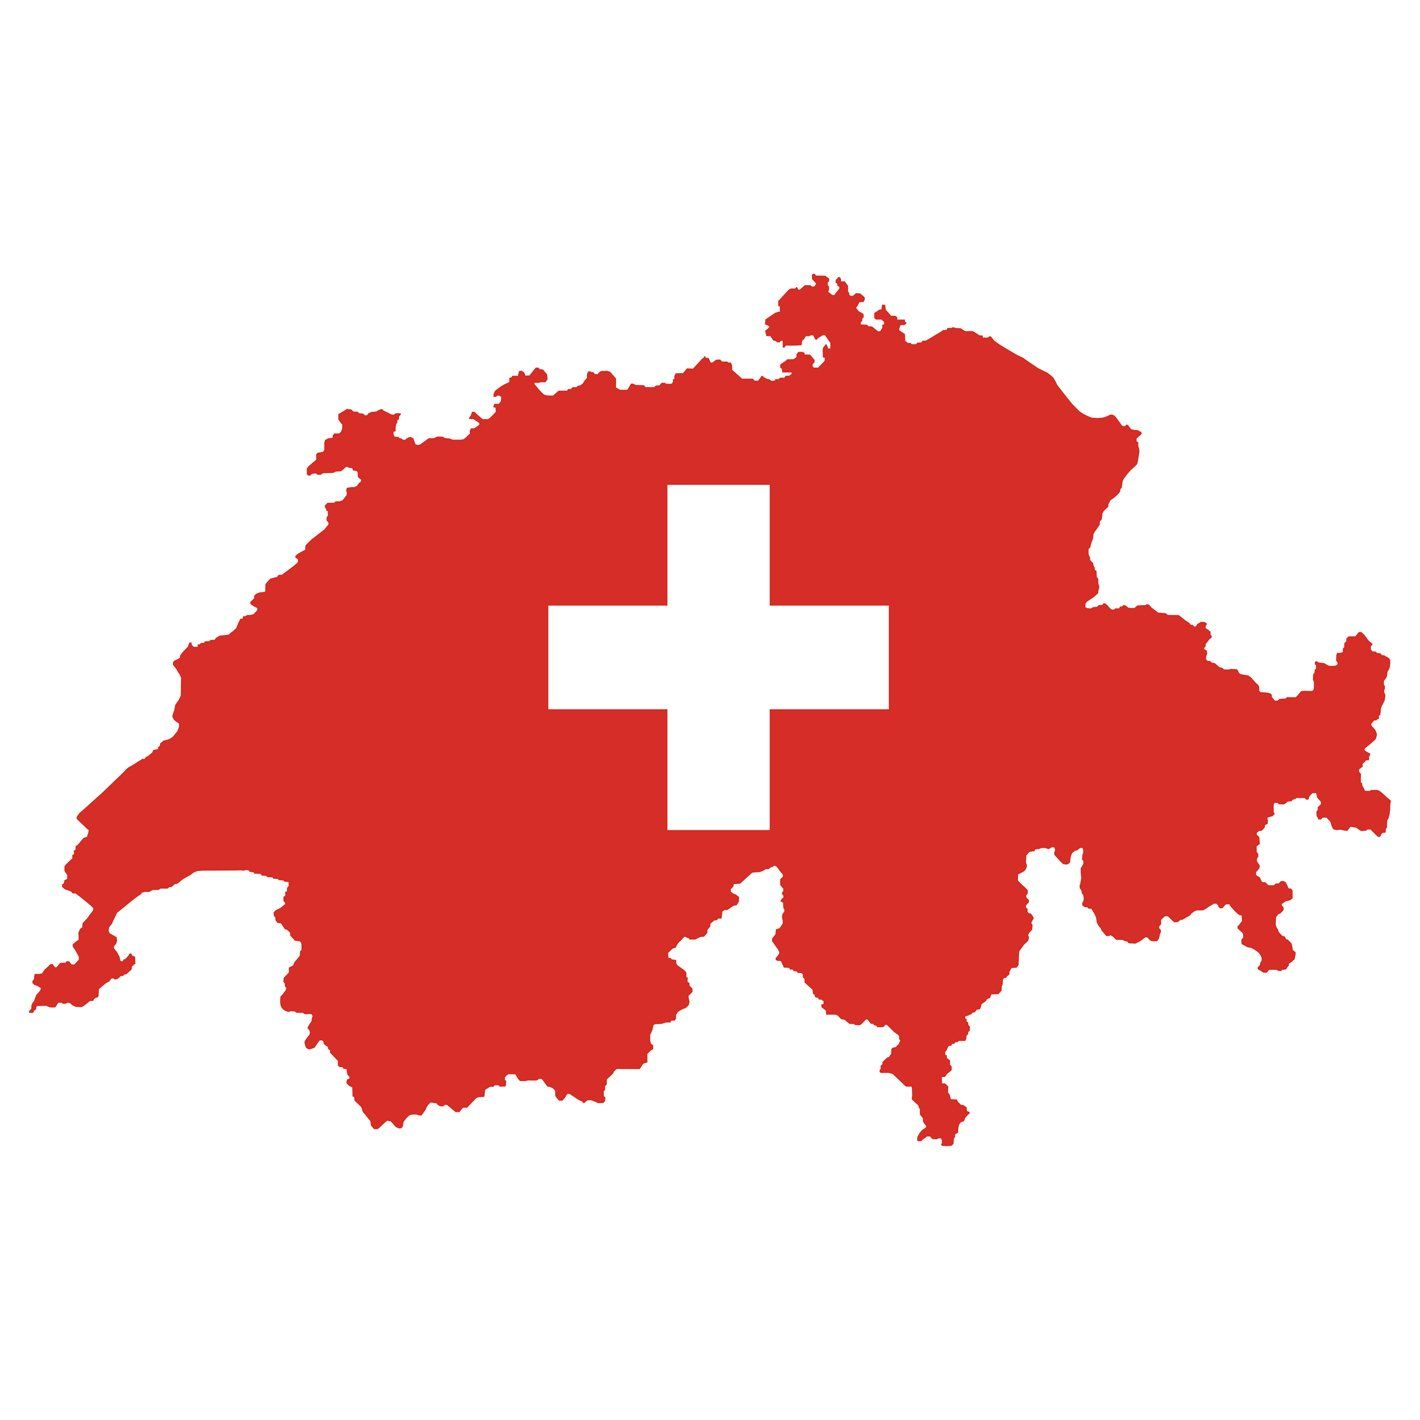 Switzerland Flags Of The World Icon Removable Wall Adhesive Decal In 2021 Map Of Switzerland Flag Vector Swiss Flag